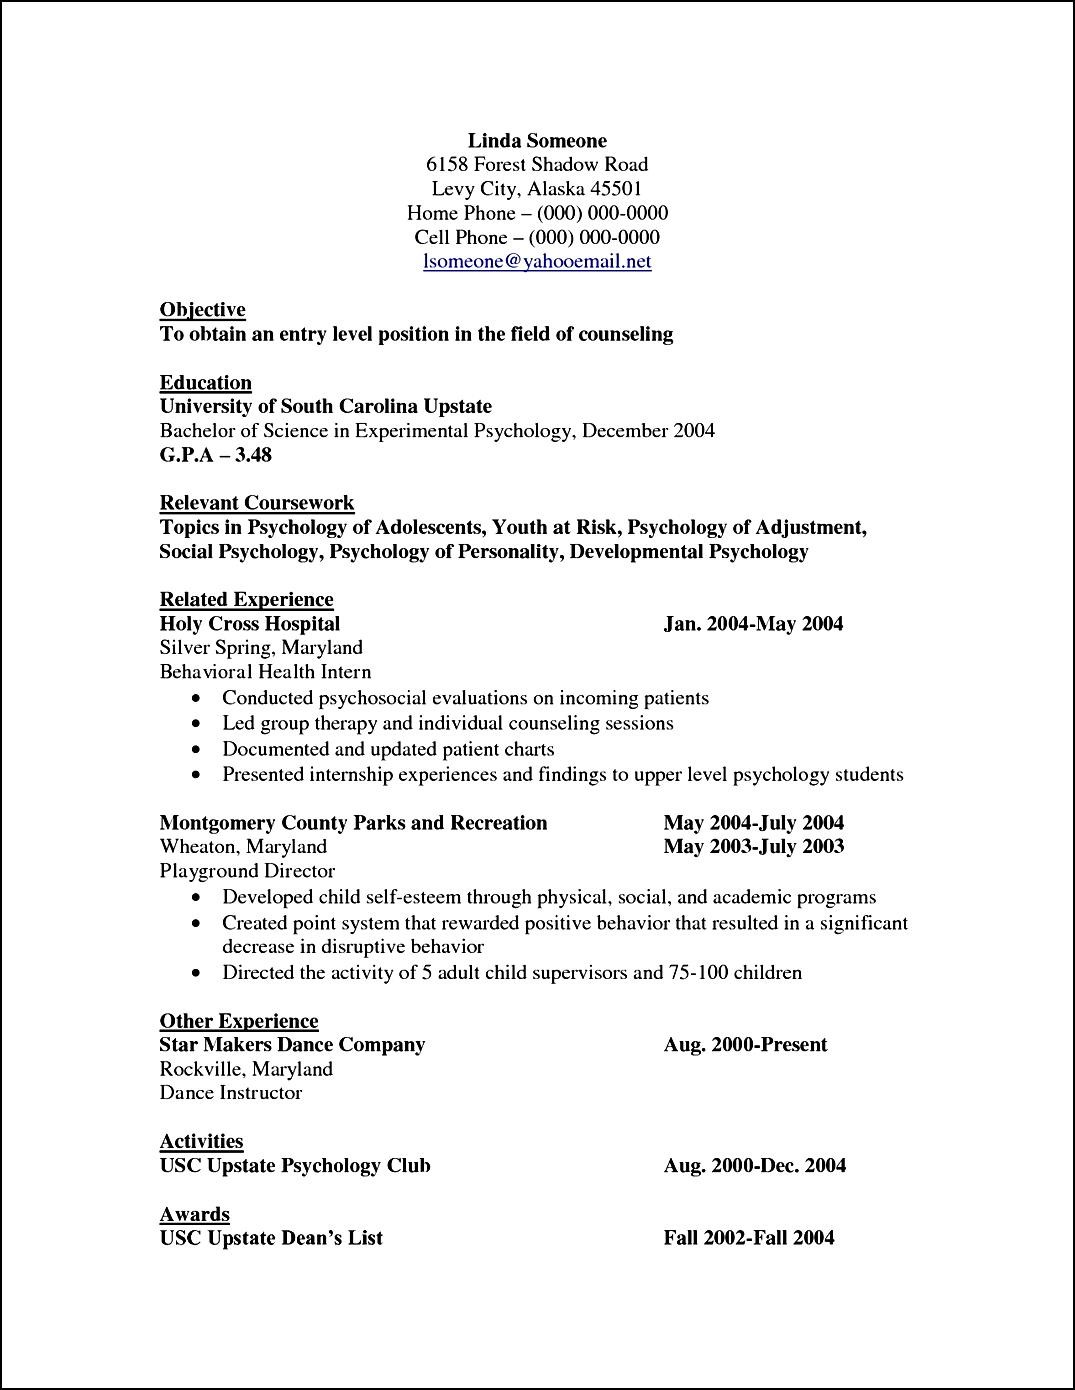 Curriculum Vitae Template For Psychologist  Free Samples  Examples  Format Resume